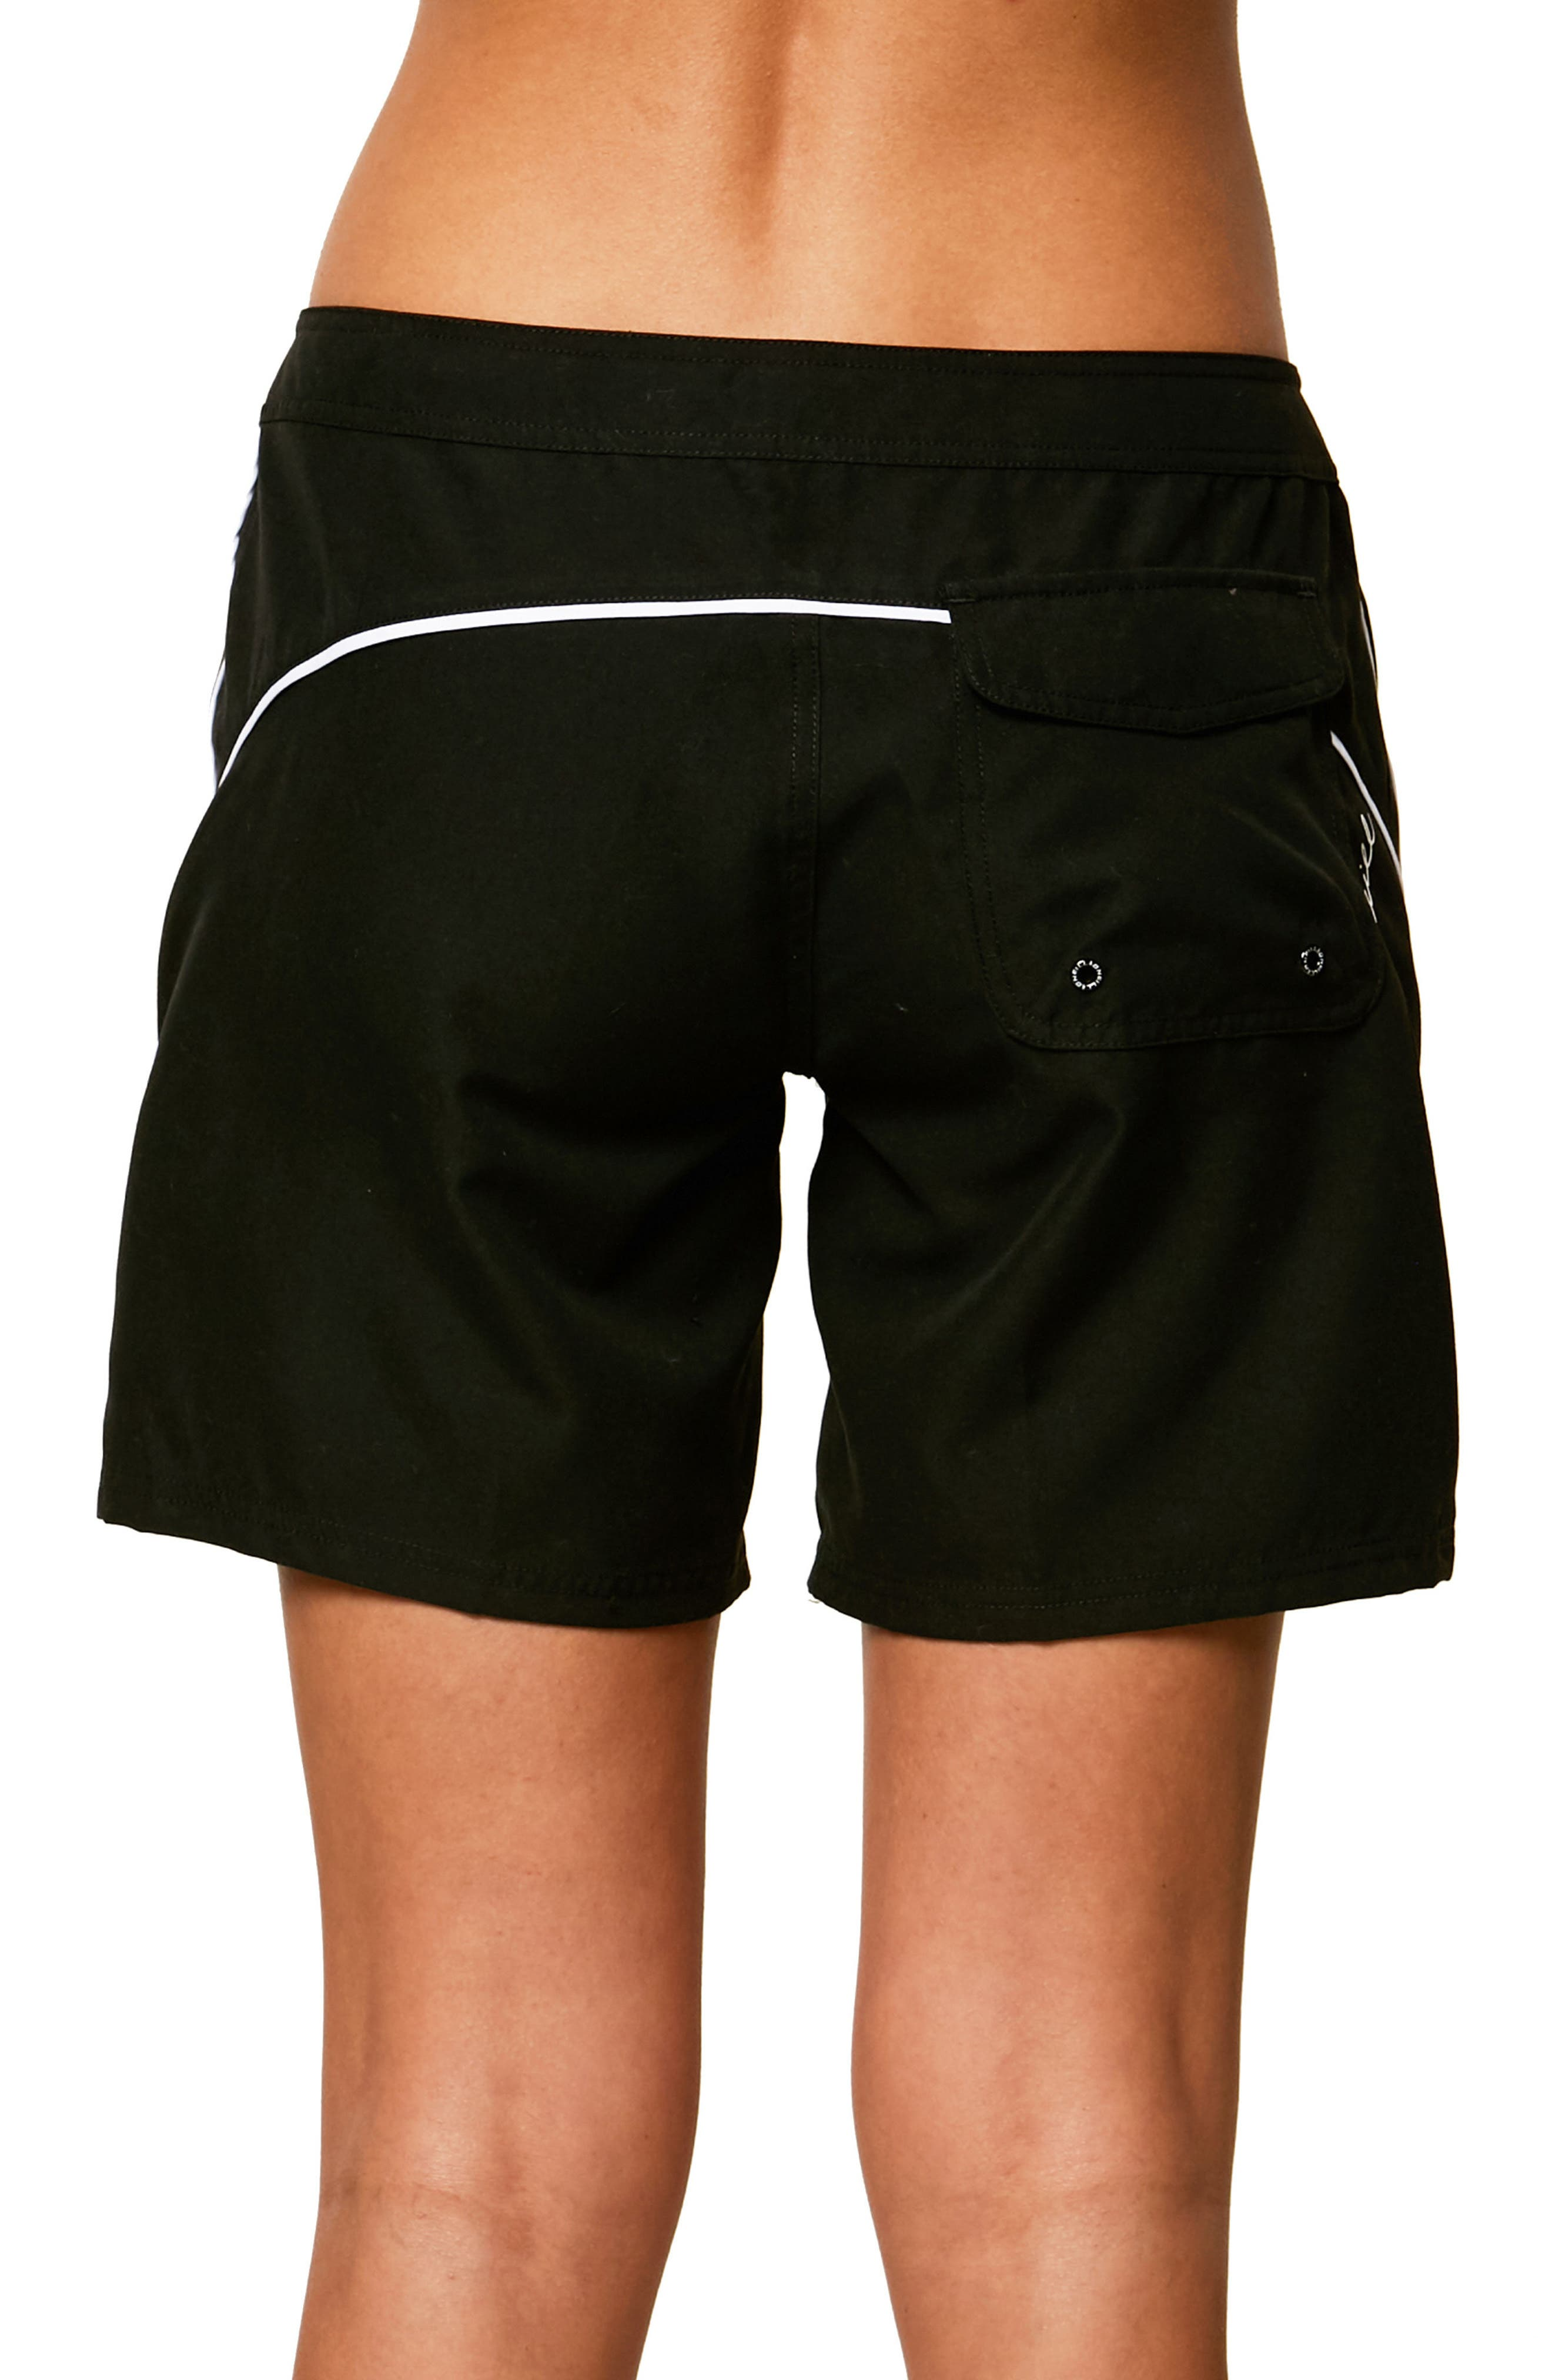 Salt Water Board Shorts,                             Alternate thumbnail 2, color,                             Black